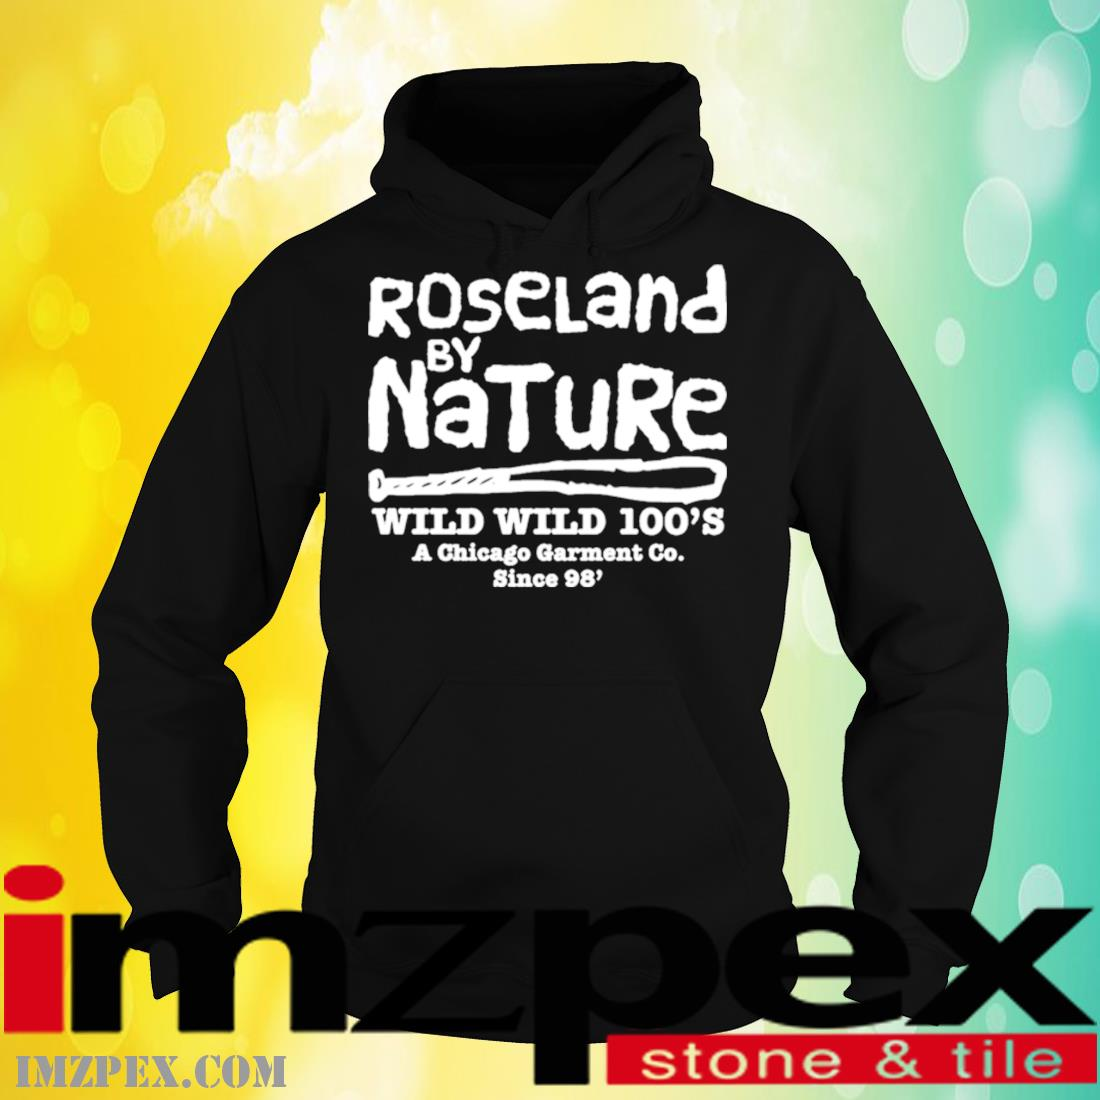 Roseland By Natural Wild Wild 100's A Chicago Garment Co Since 98′ Shirt hoodie